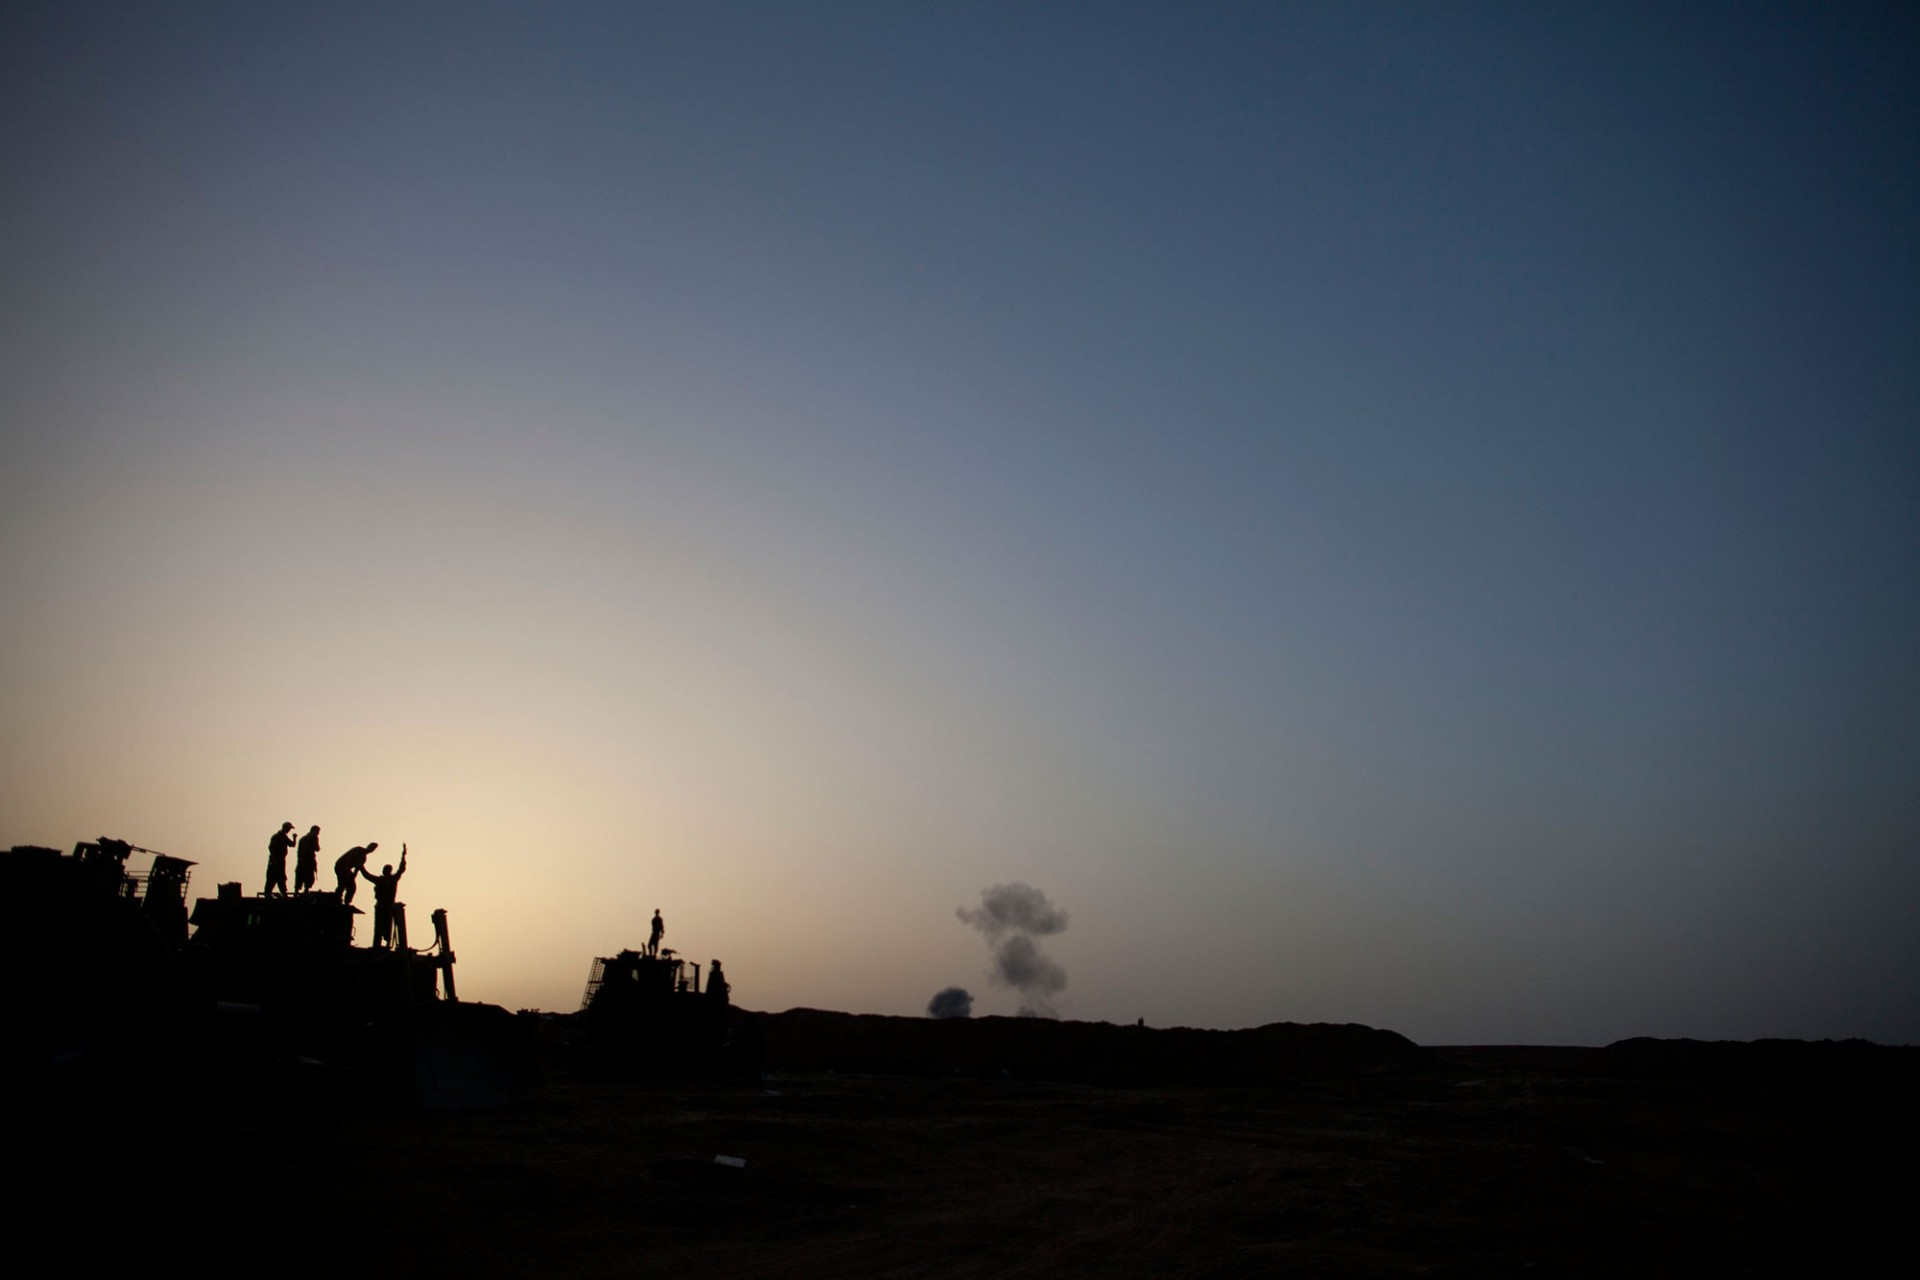 Israeli soldiers watch smoke plumes rises from Gaza following an Israel Air Force bombing on July 12, 2014 in Israel Gaza border.